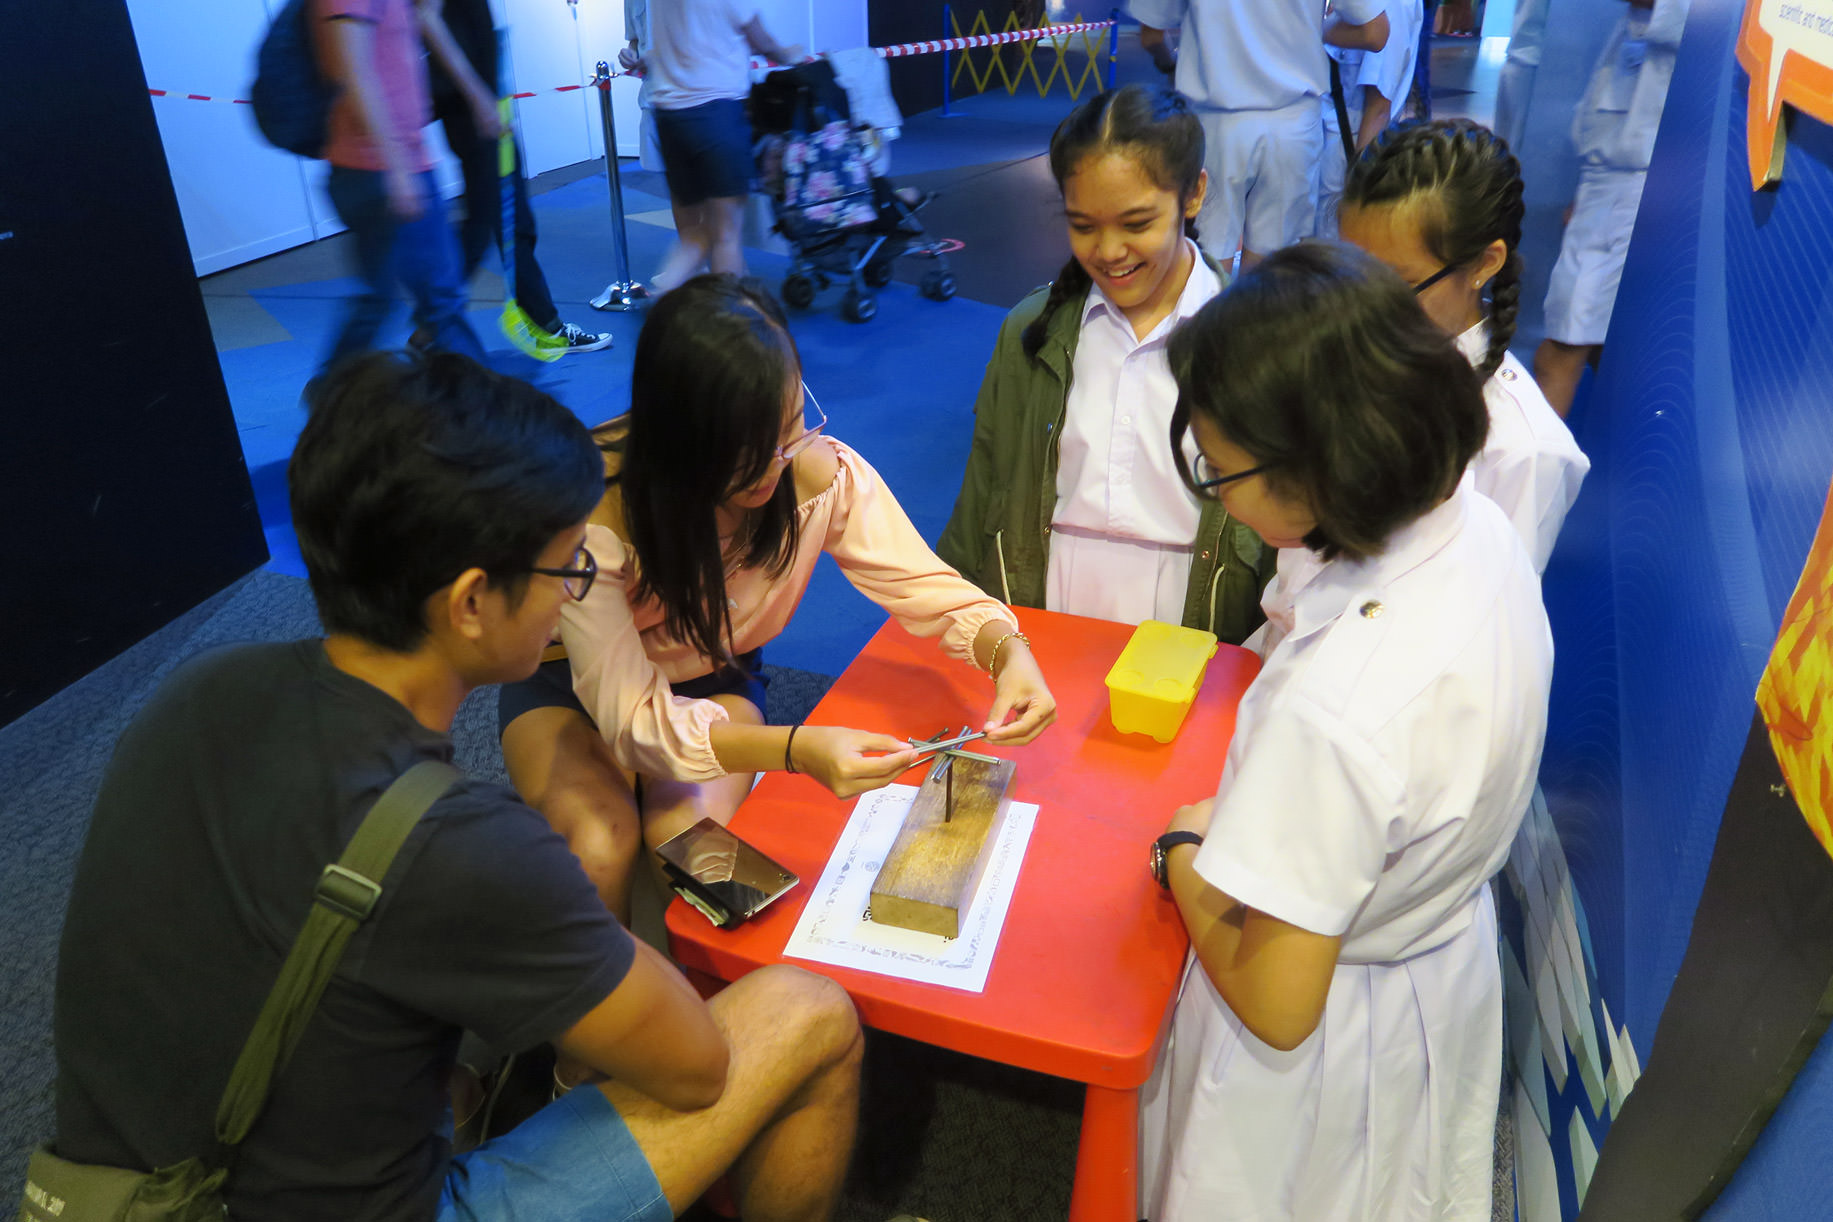 Helping-visitors-to-solve-mathematical-puzzles.jpg